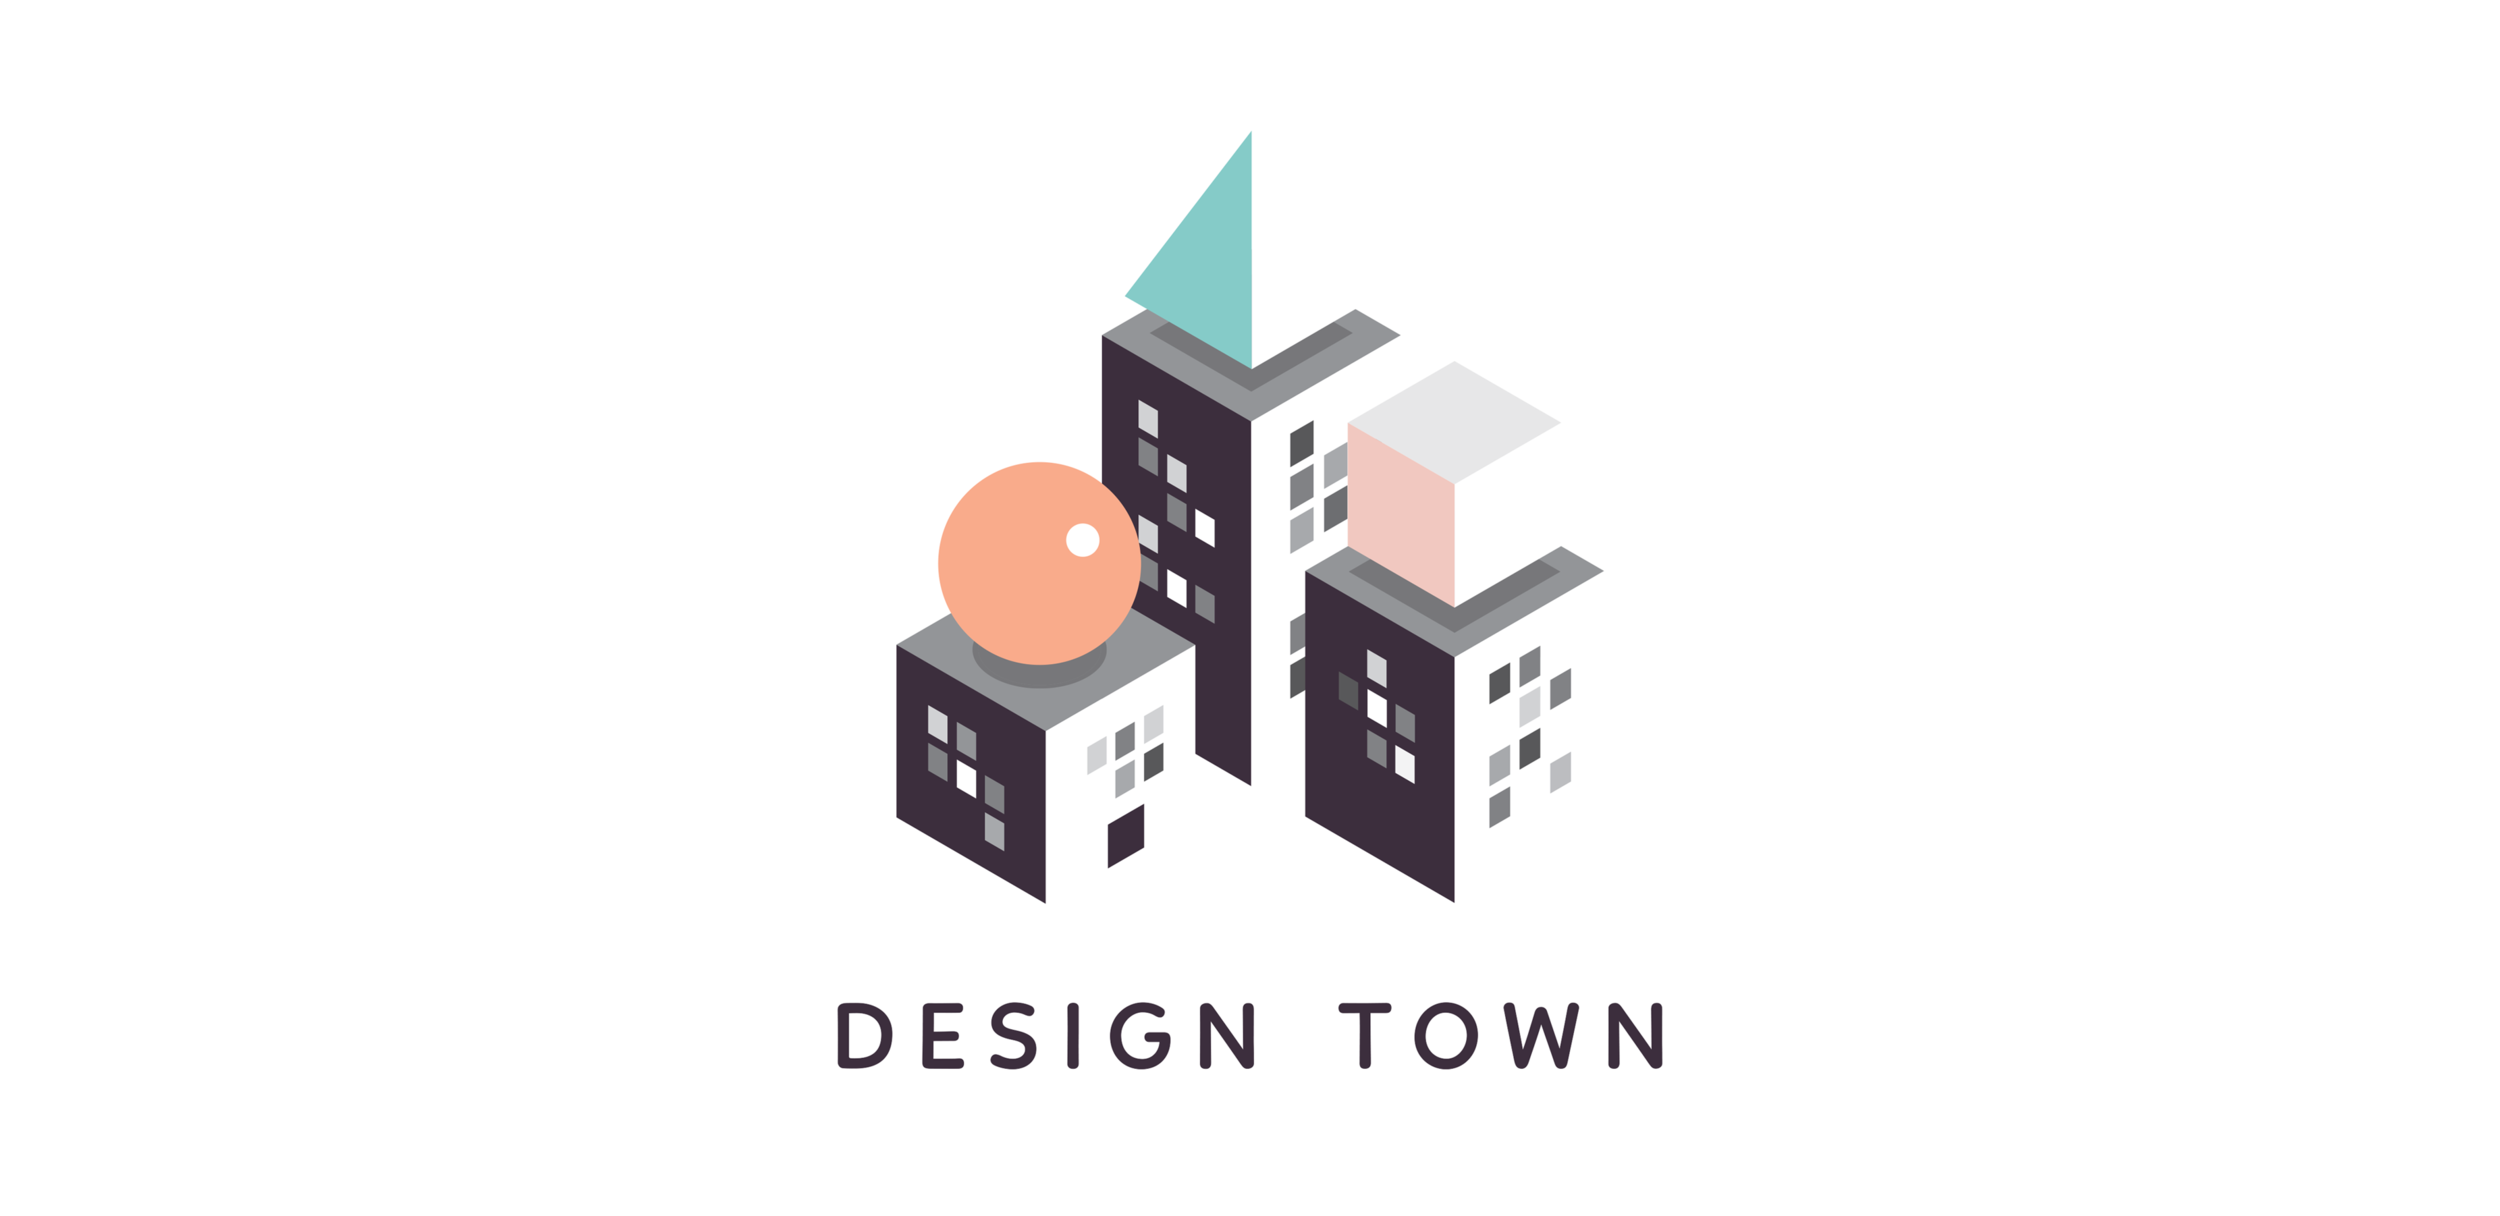 DesignTown  @ CIC Boston  Design Town, powered by CIC Boston, brings together designers and makers across all industries to assemble, collaborate, and innovate.